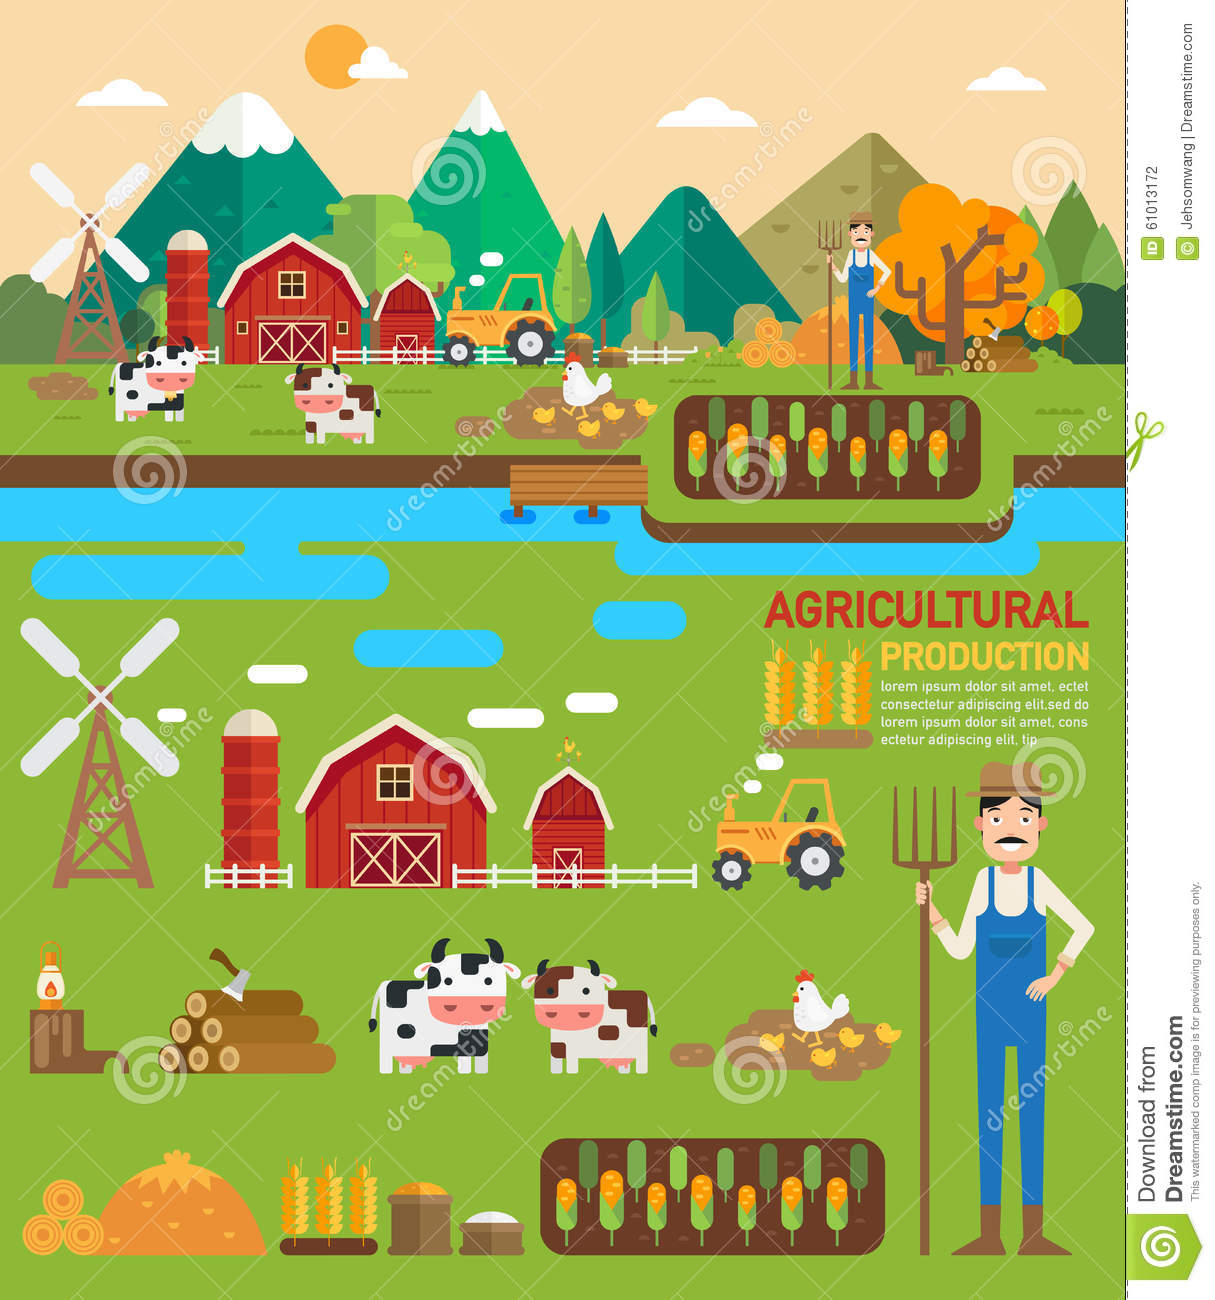 Agricultural Production Infographic Stock Vector